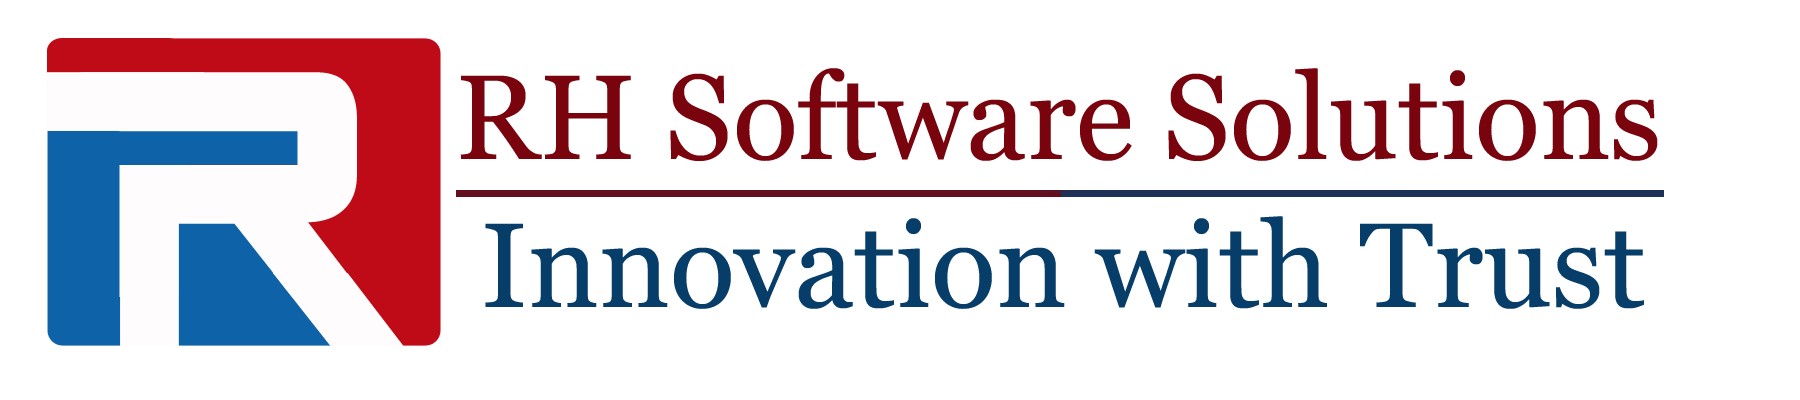 RH Software solutions